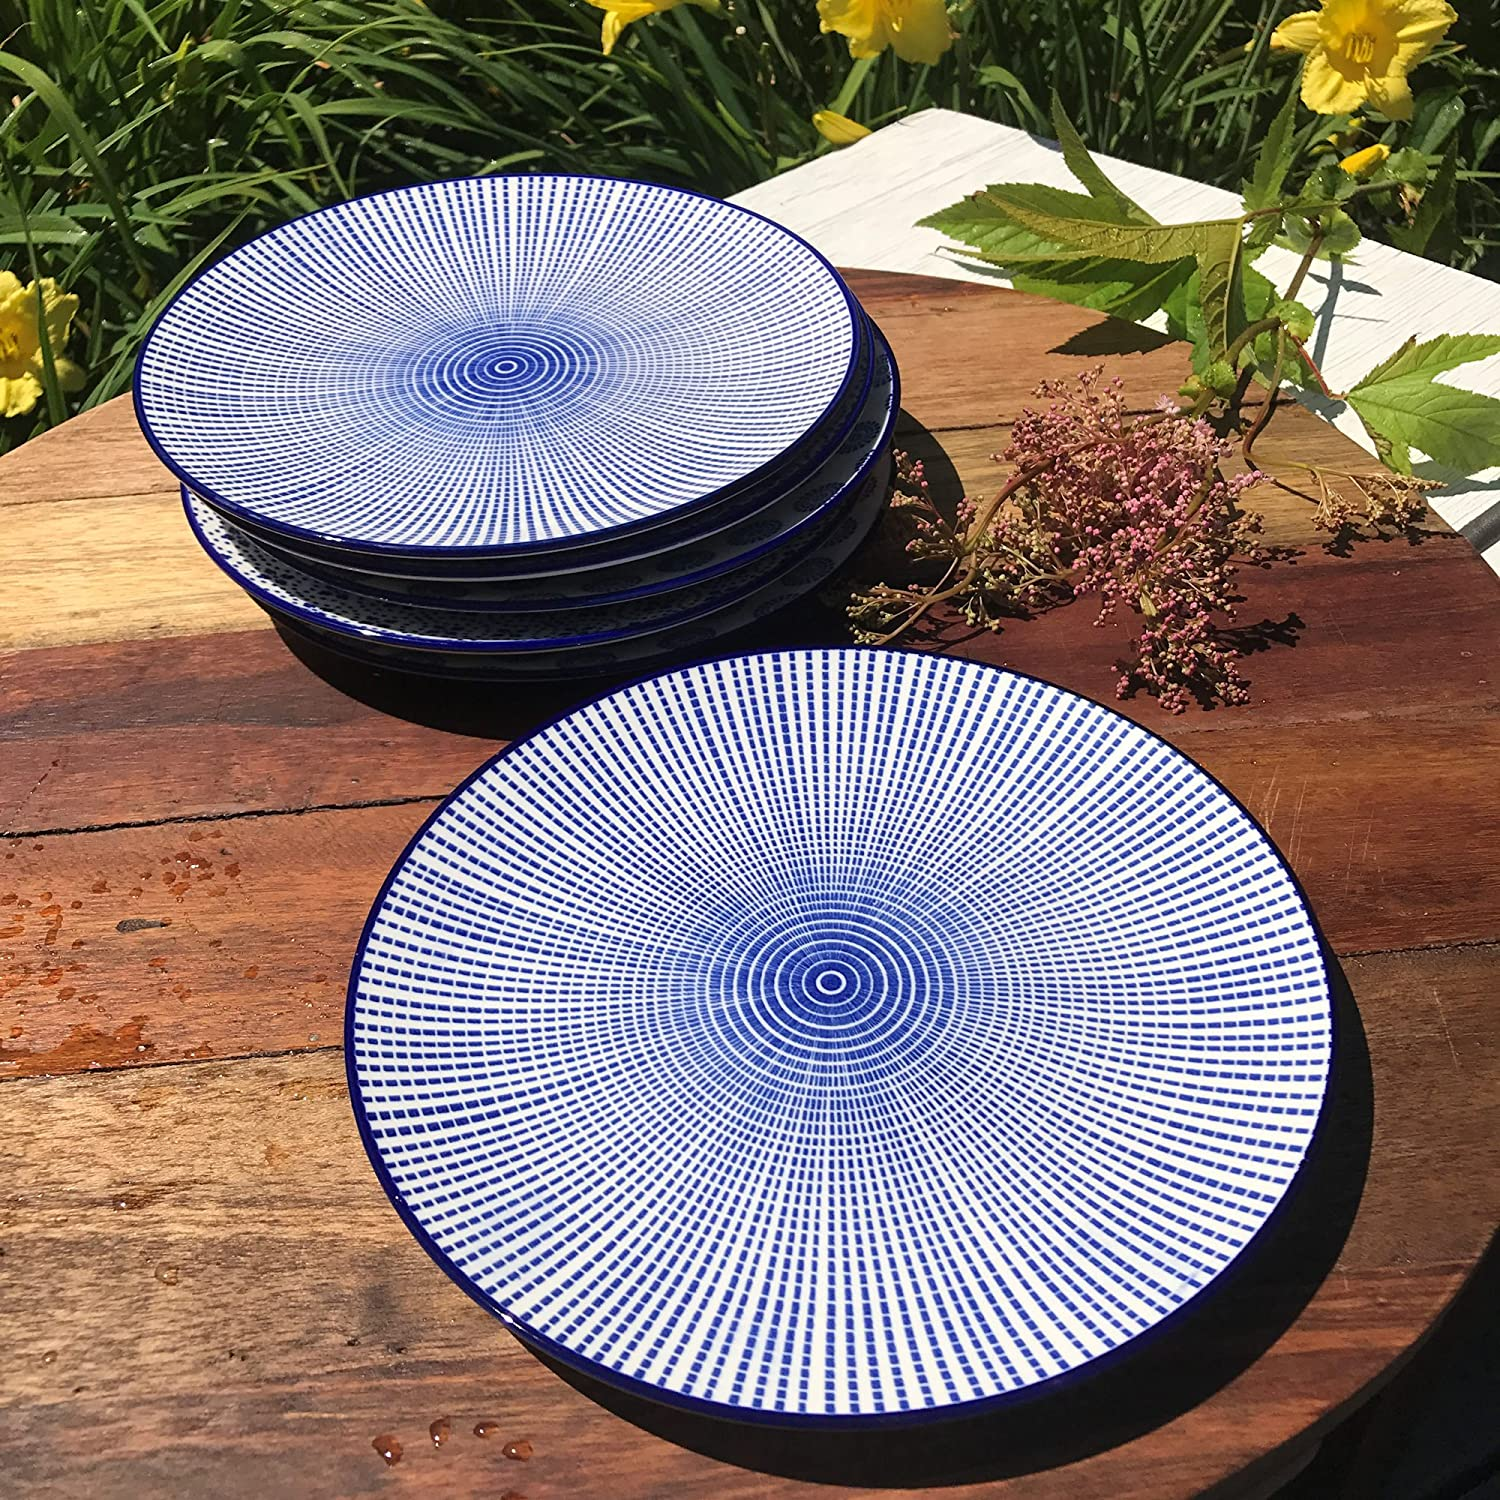 Stoneware 2 Trellis 8 3//4 Inches Diameter WHW Whole House Worlds Summertime Blue and White Dishes Set of 6 2 Rounds and 2 Stripes Dishwasher Safe